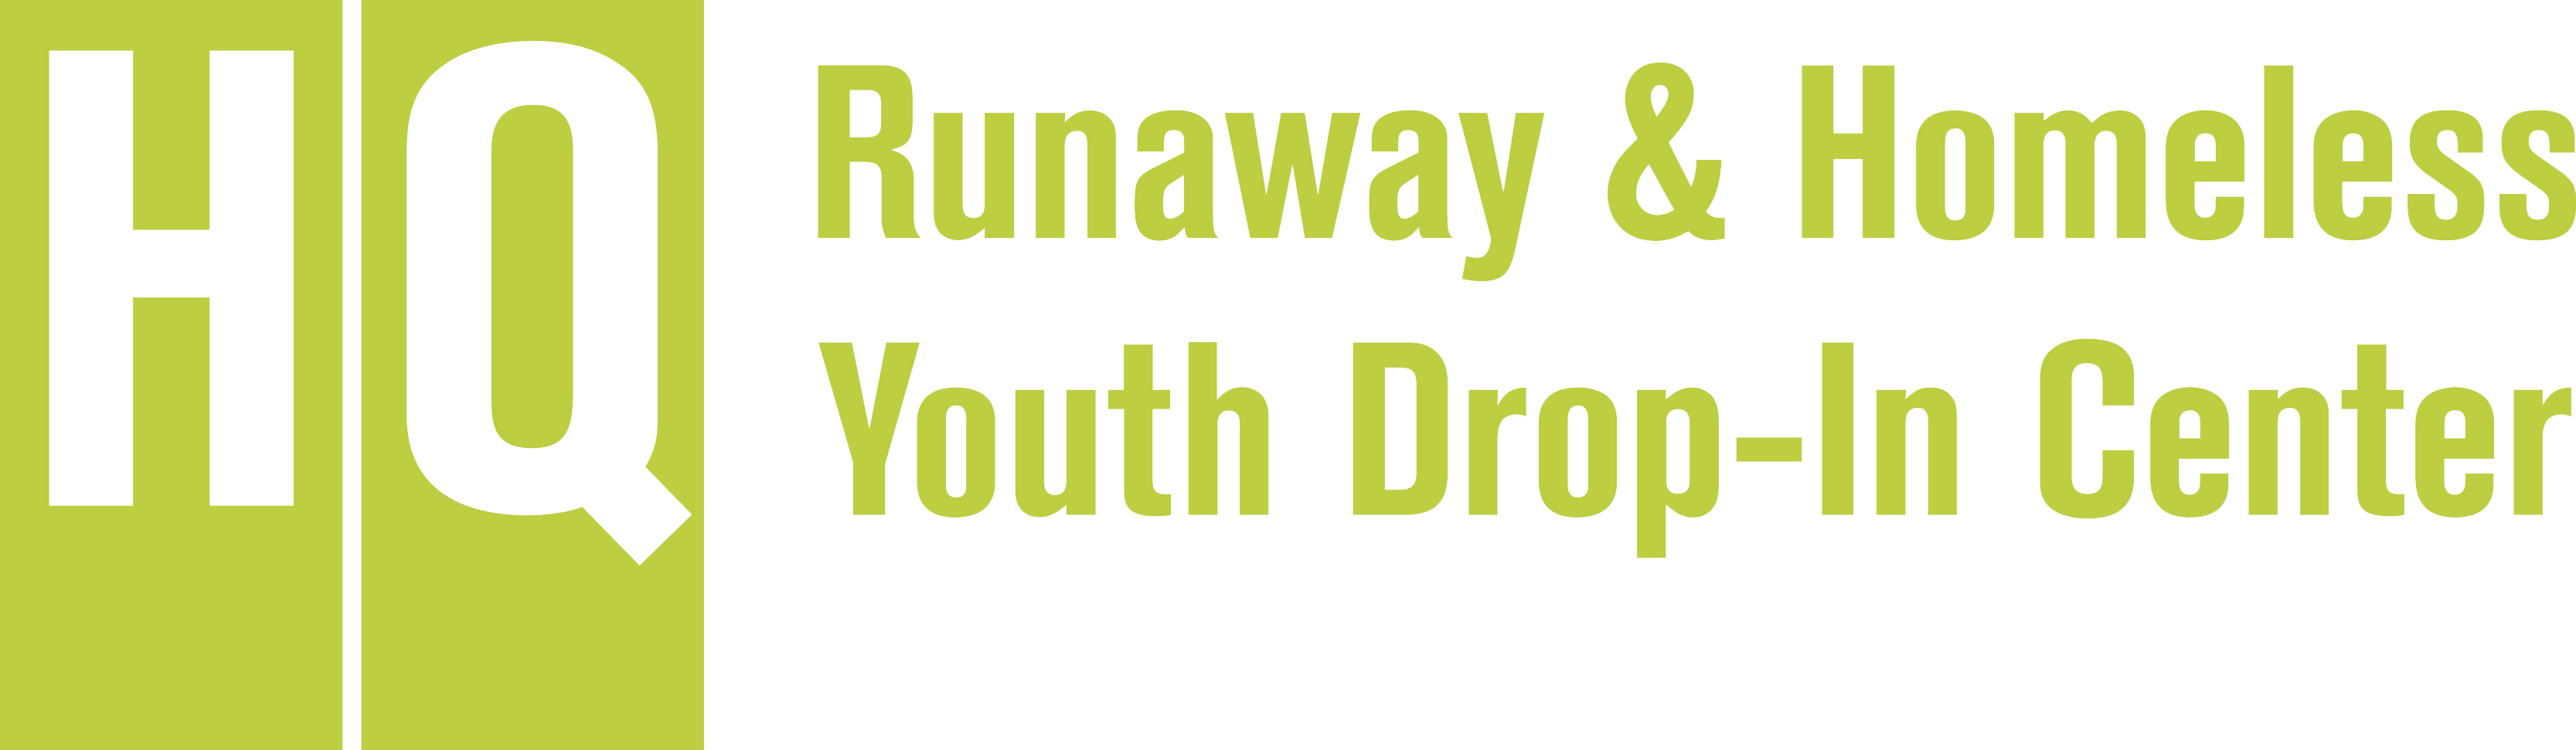 Runaway and Homeless Youth Drop-in Center